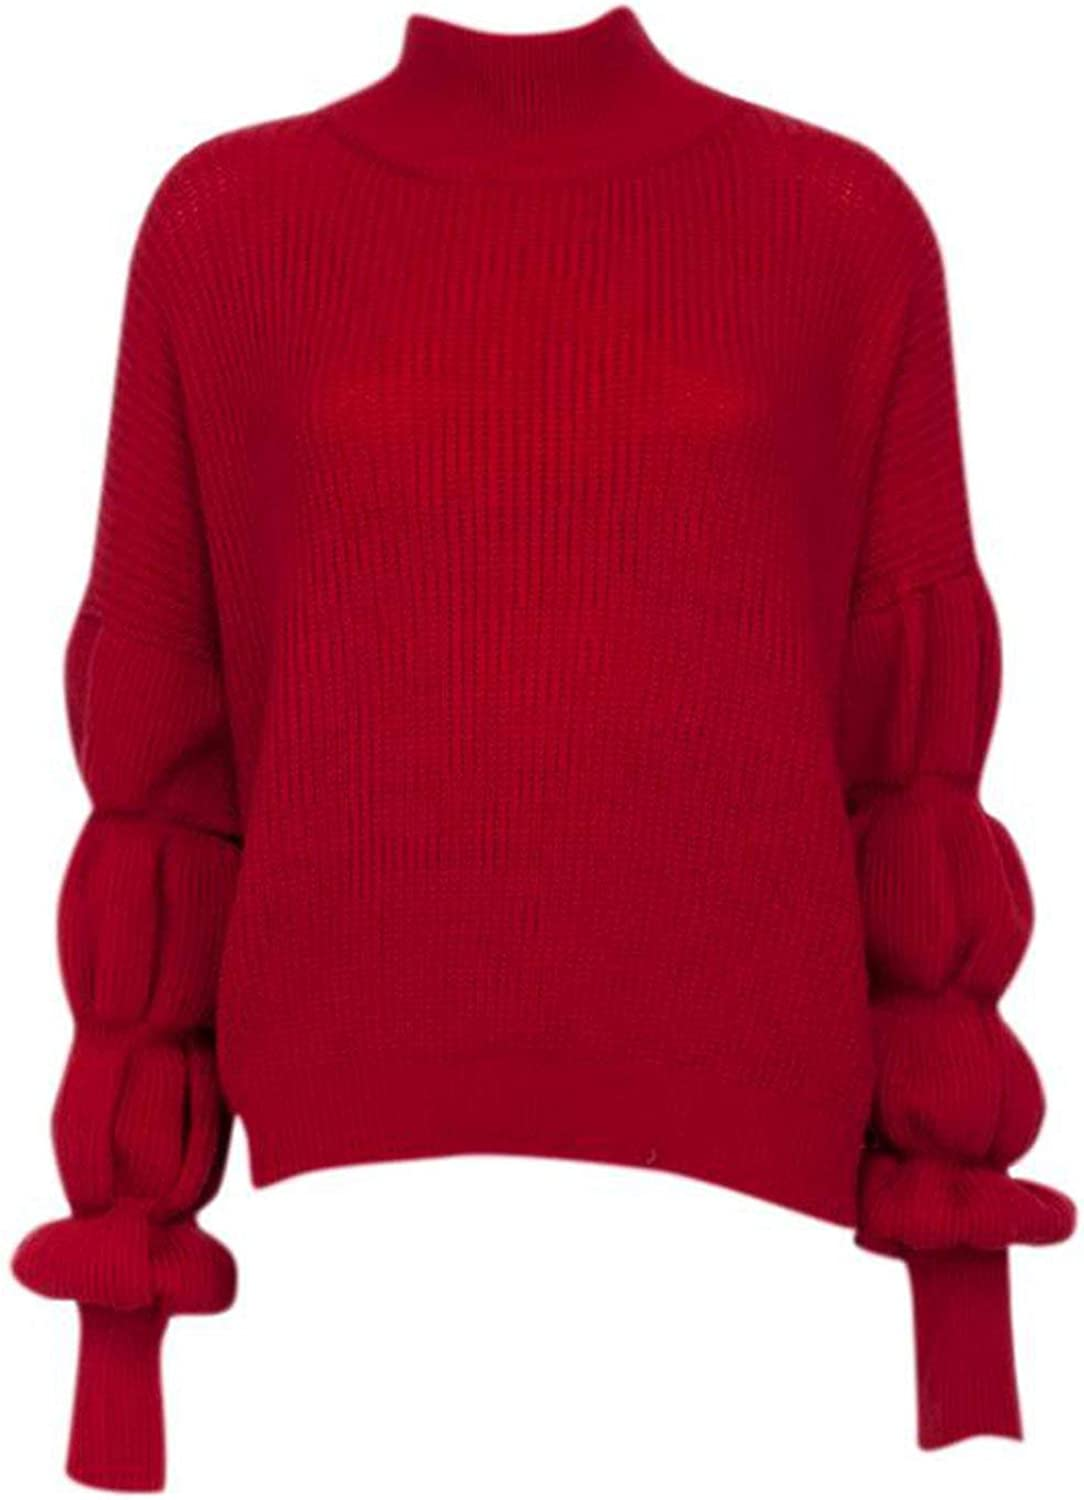 Charmg Fashion Puff Sleeve Women Omaha Mall Knitted Autu Turtleneck Sweater Quality inspection